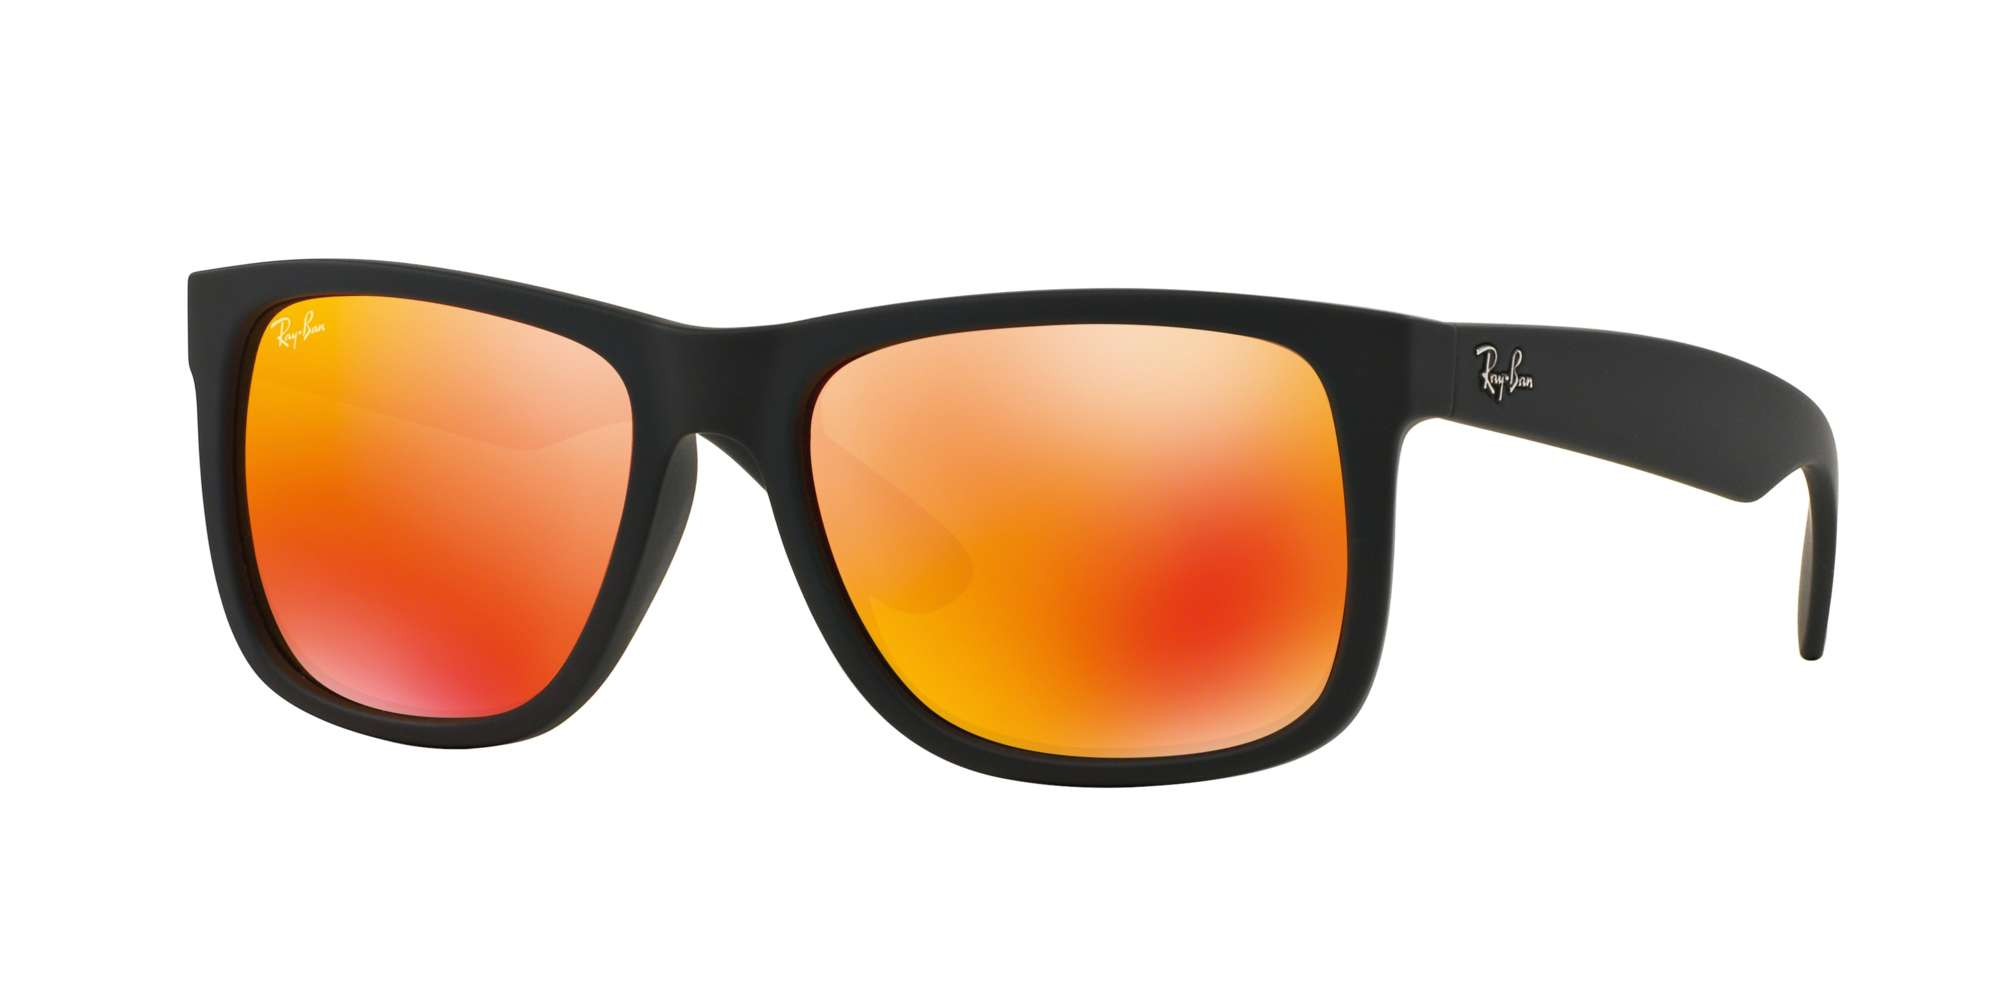 Black Rubber / BROWN MIRROR ORANGE lenses